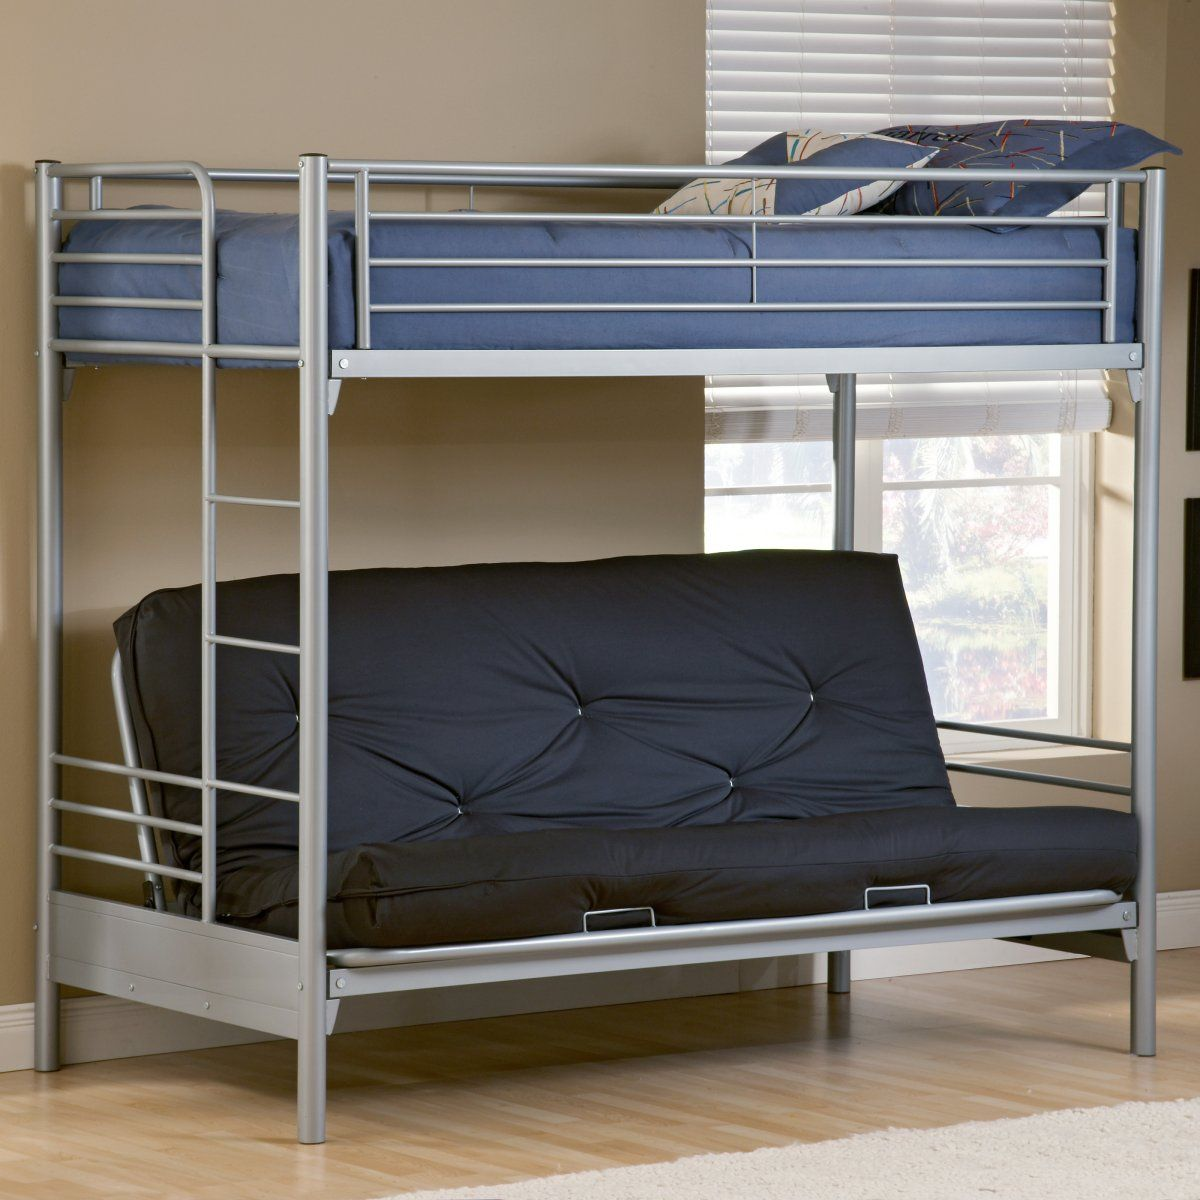 Pin By Lori Gonzales On Boys Bedroom Pinterest Futon Bunk Bed